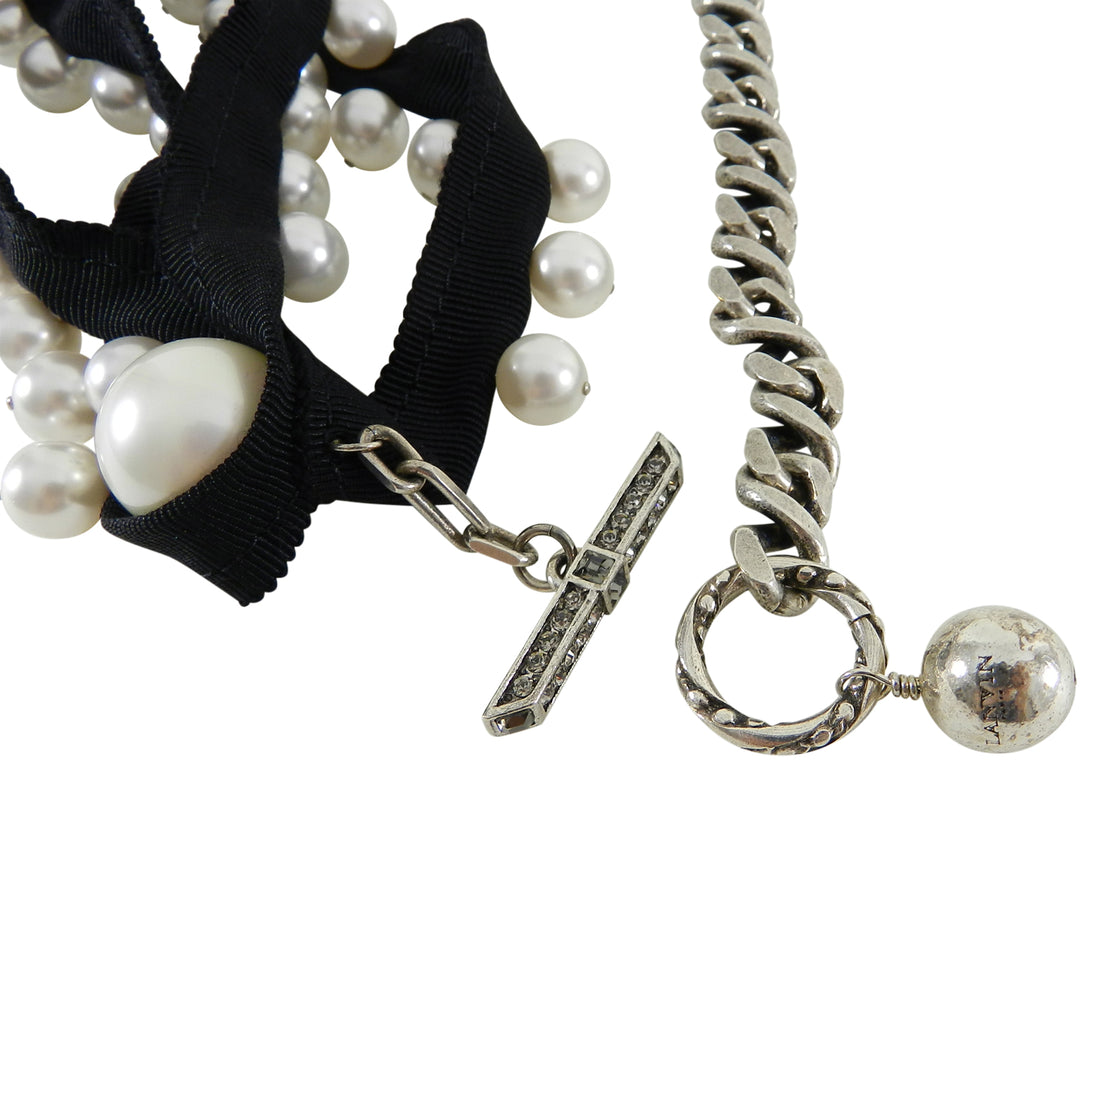 Lanvin Pearl and Ribbon Chain Necklace with Rhinestones